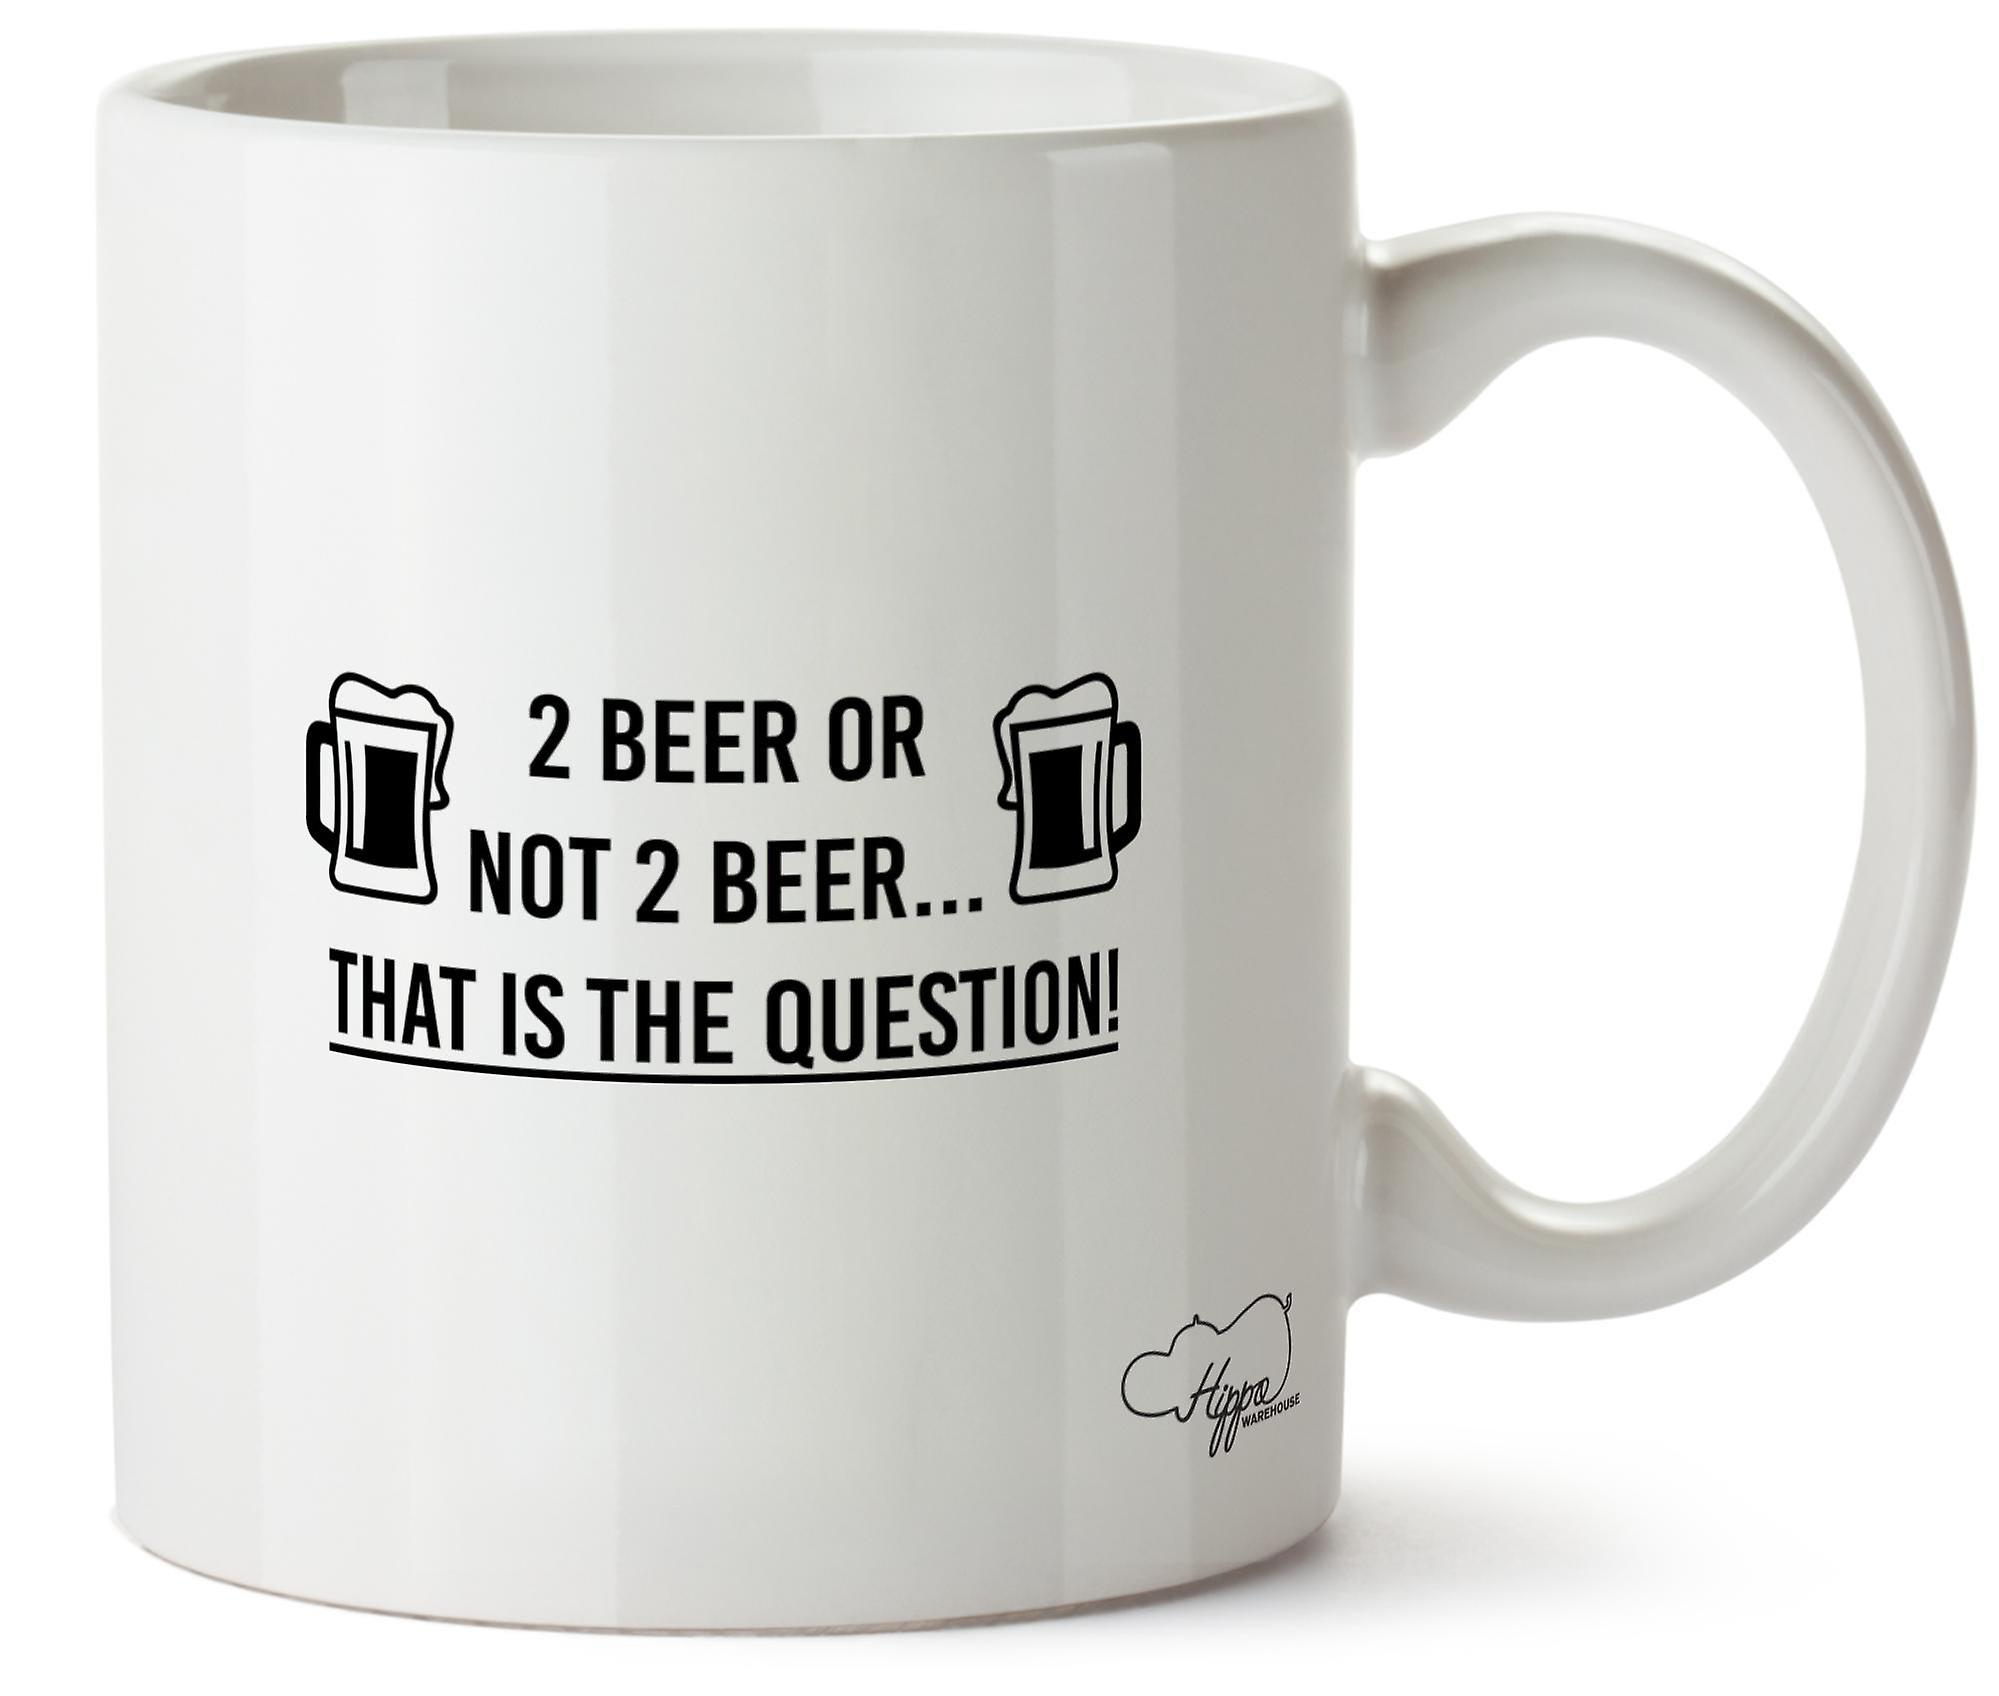 Hippowarehouse 2 Beer Or Not 2 Beer That Is The Question! Printed Mug Cup Ceramic 10oz